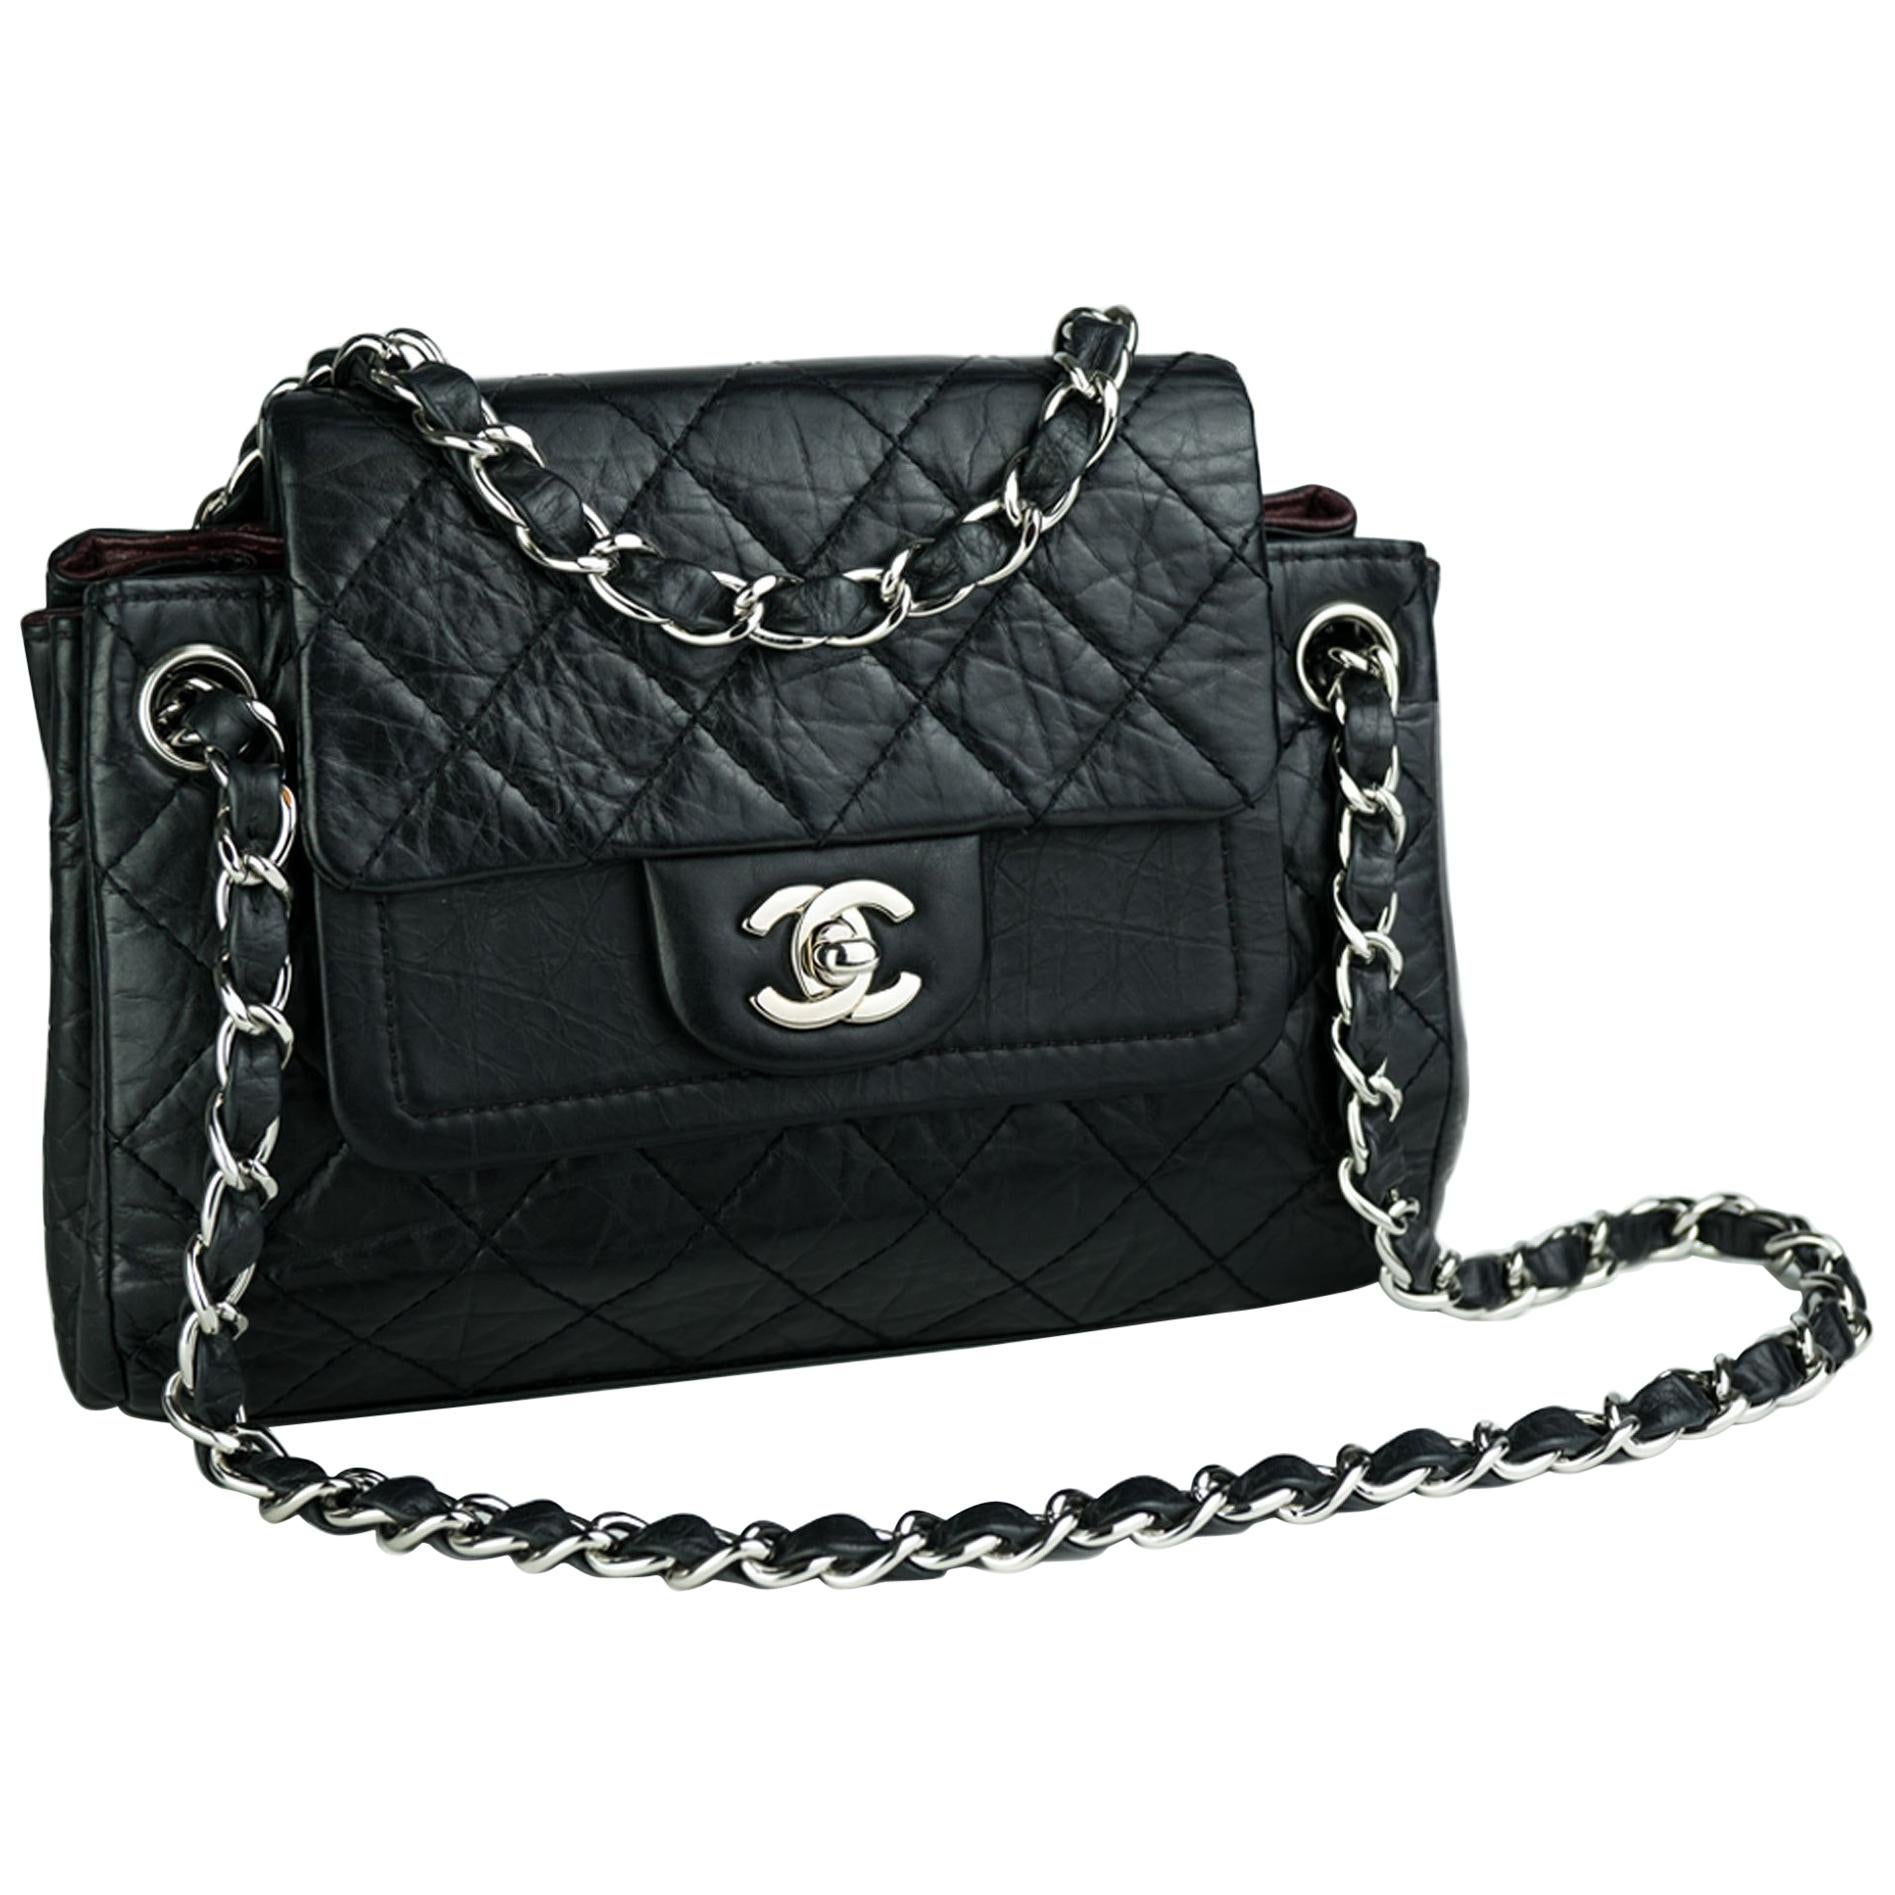 Chanel Limited Edition Distressed Calfskin Classic Double Flap Bag